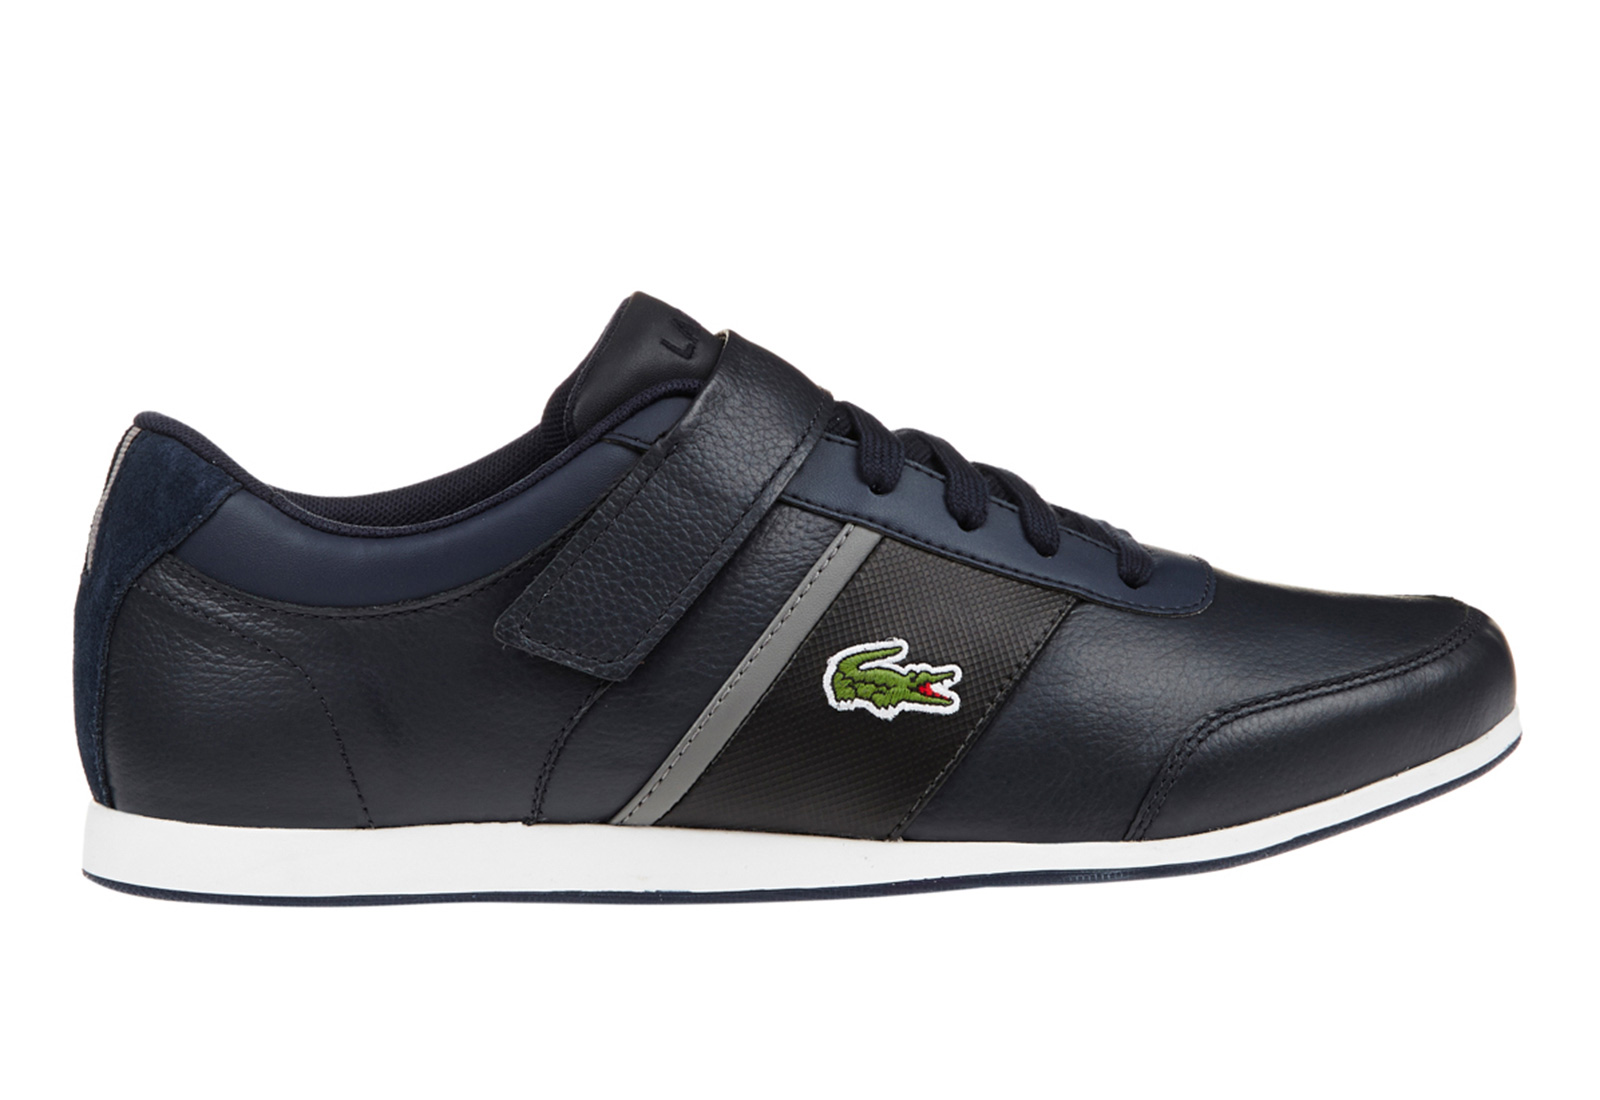 c10575e4247f30 Lacoste Shoes - Embrun Urs - zx-spm20202n1 - Online shop for ...